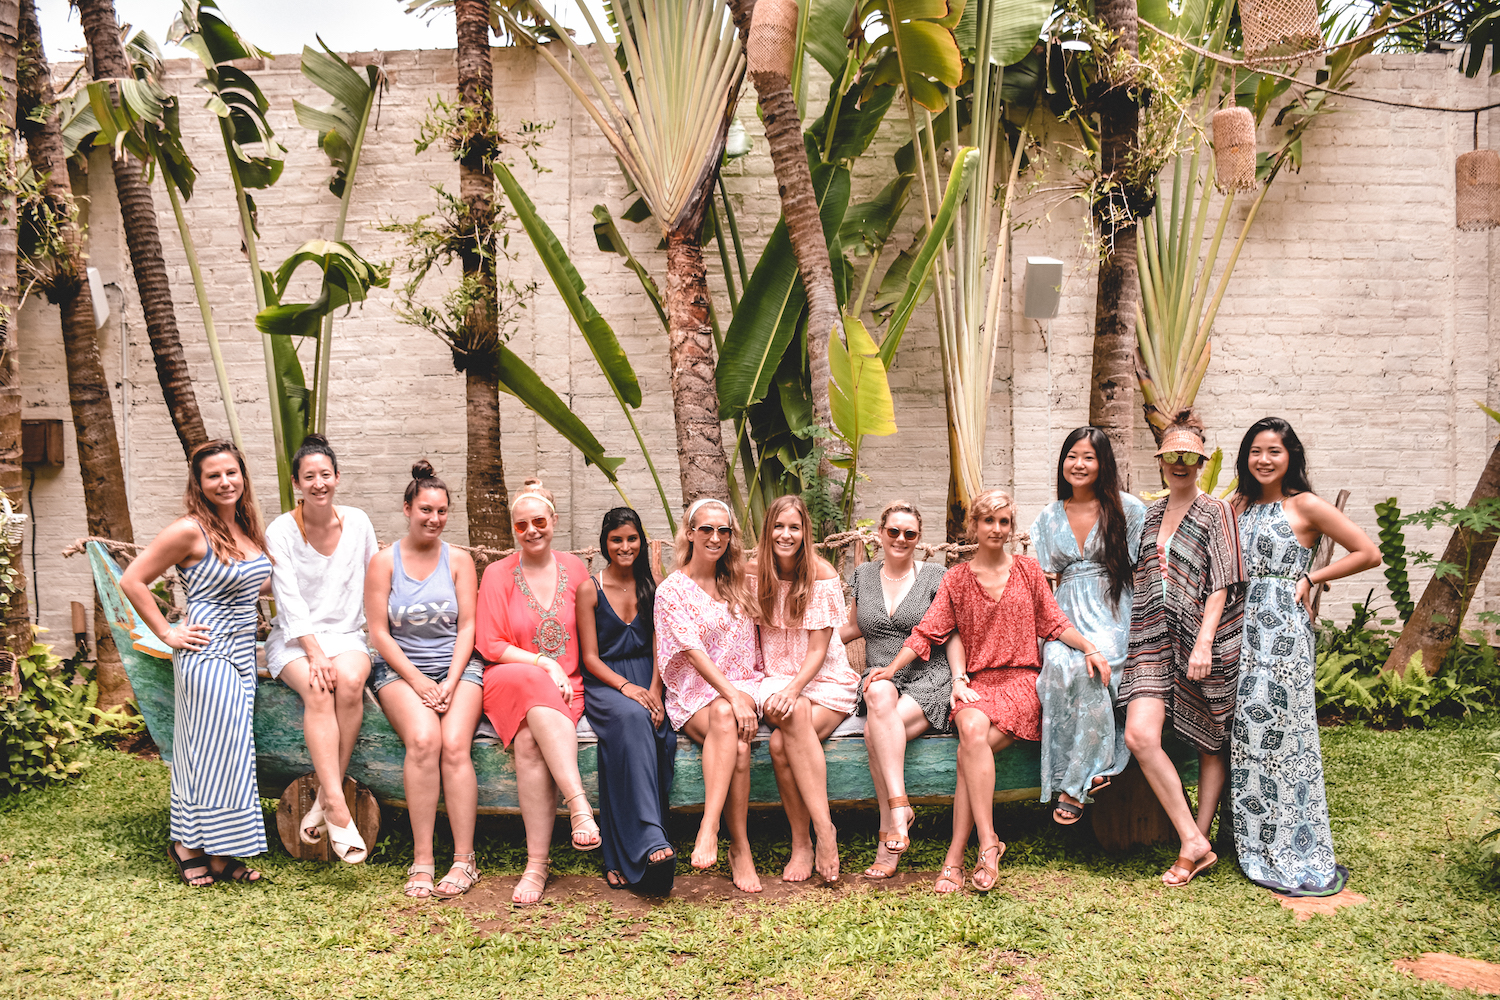 WOMENS RETREAT IN BALI BY TRAVEL GIRLS GETAWAYS  We Are